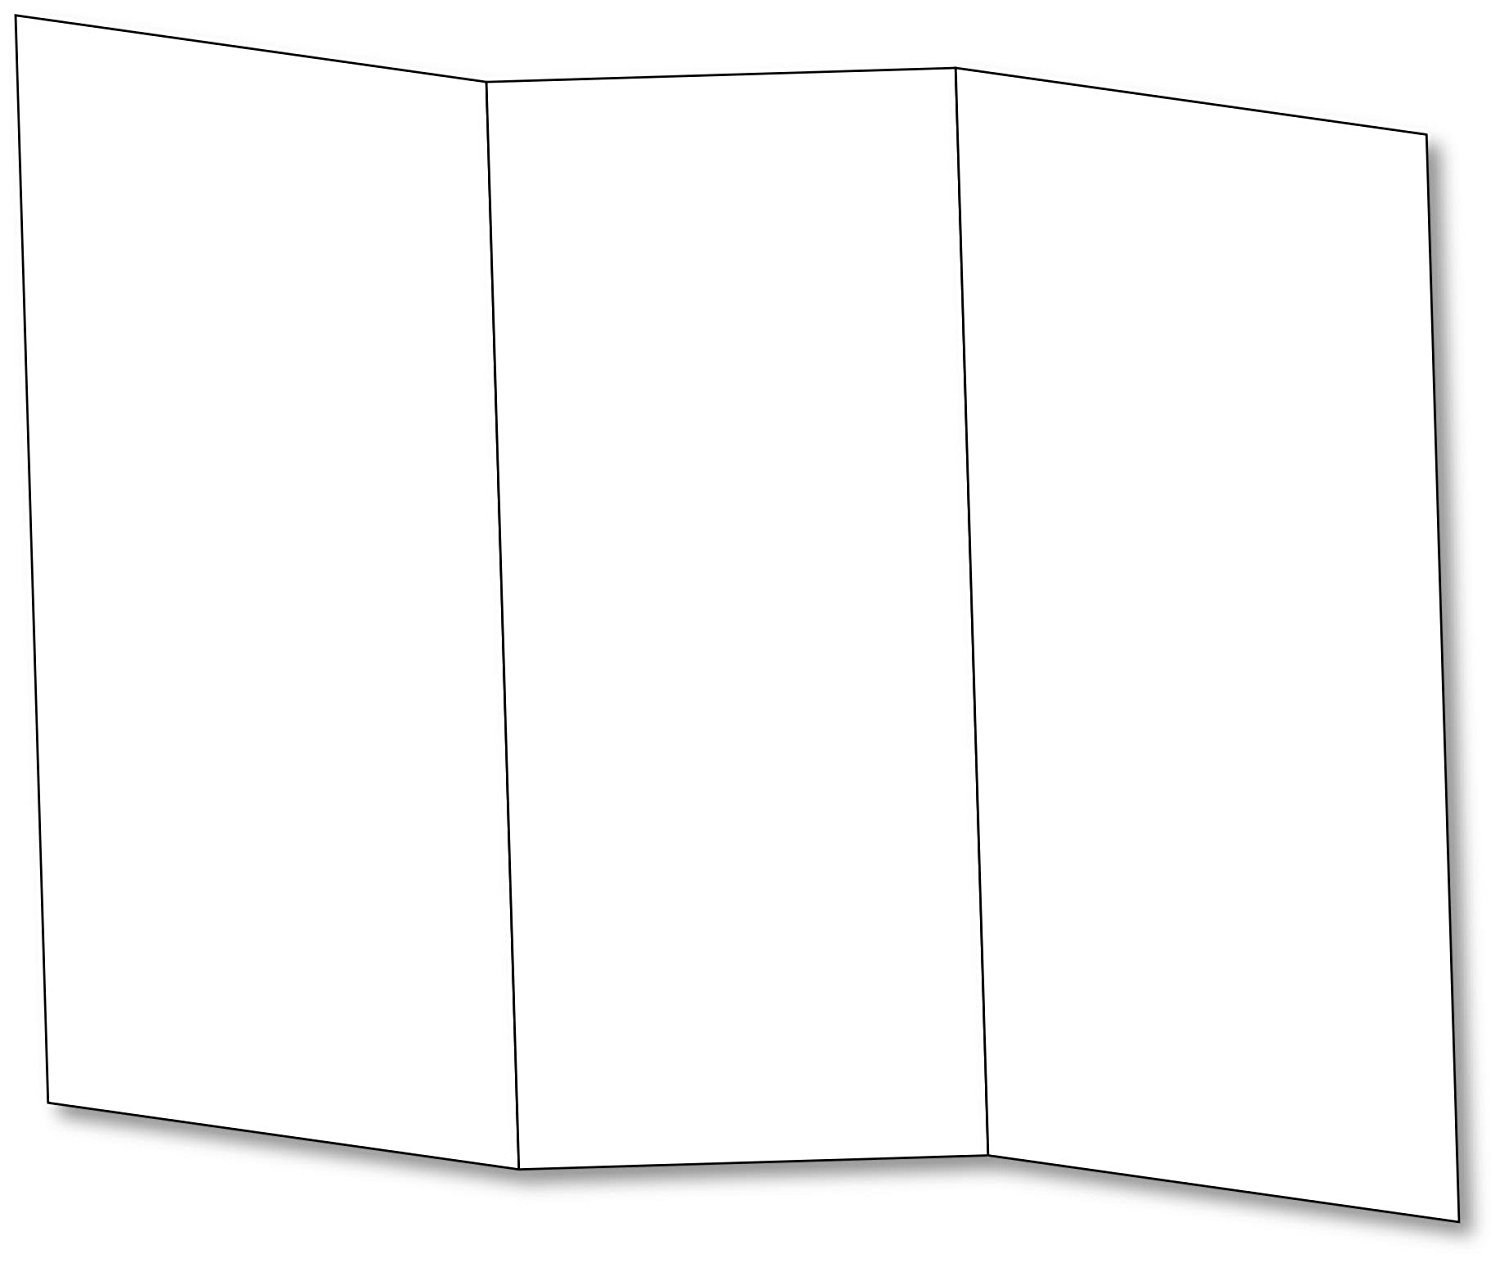 Blank Bright White Trifold Brochure Card Stock - 65lb Card Stock (176 Gsm) Scored for Easy Folding. - 250 Brochures Per Pack.